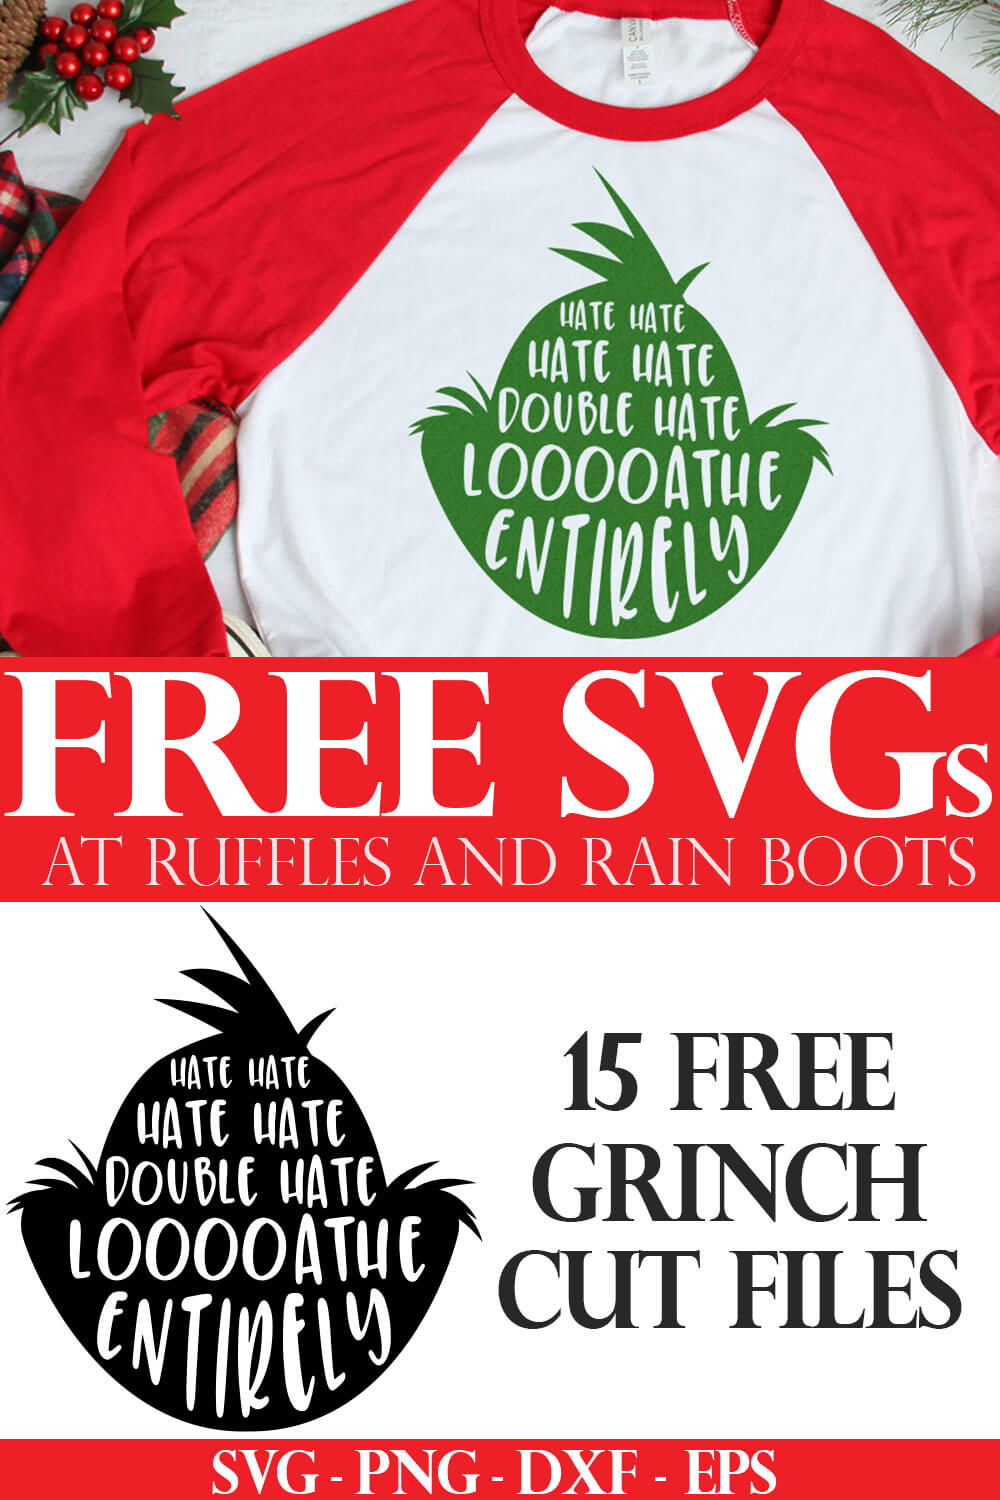 Free Grinch Head Svg Files And Grinch Face Cut Files For Holiday Crafts